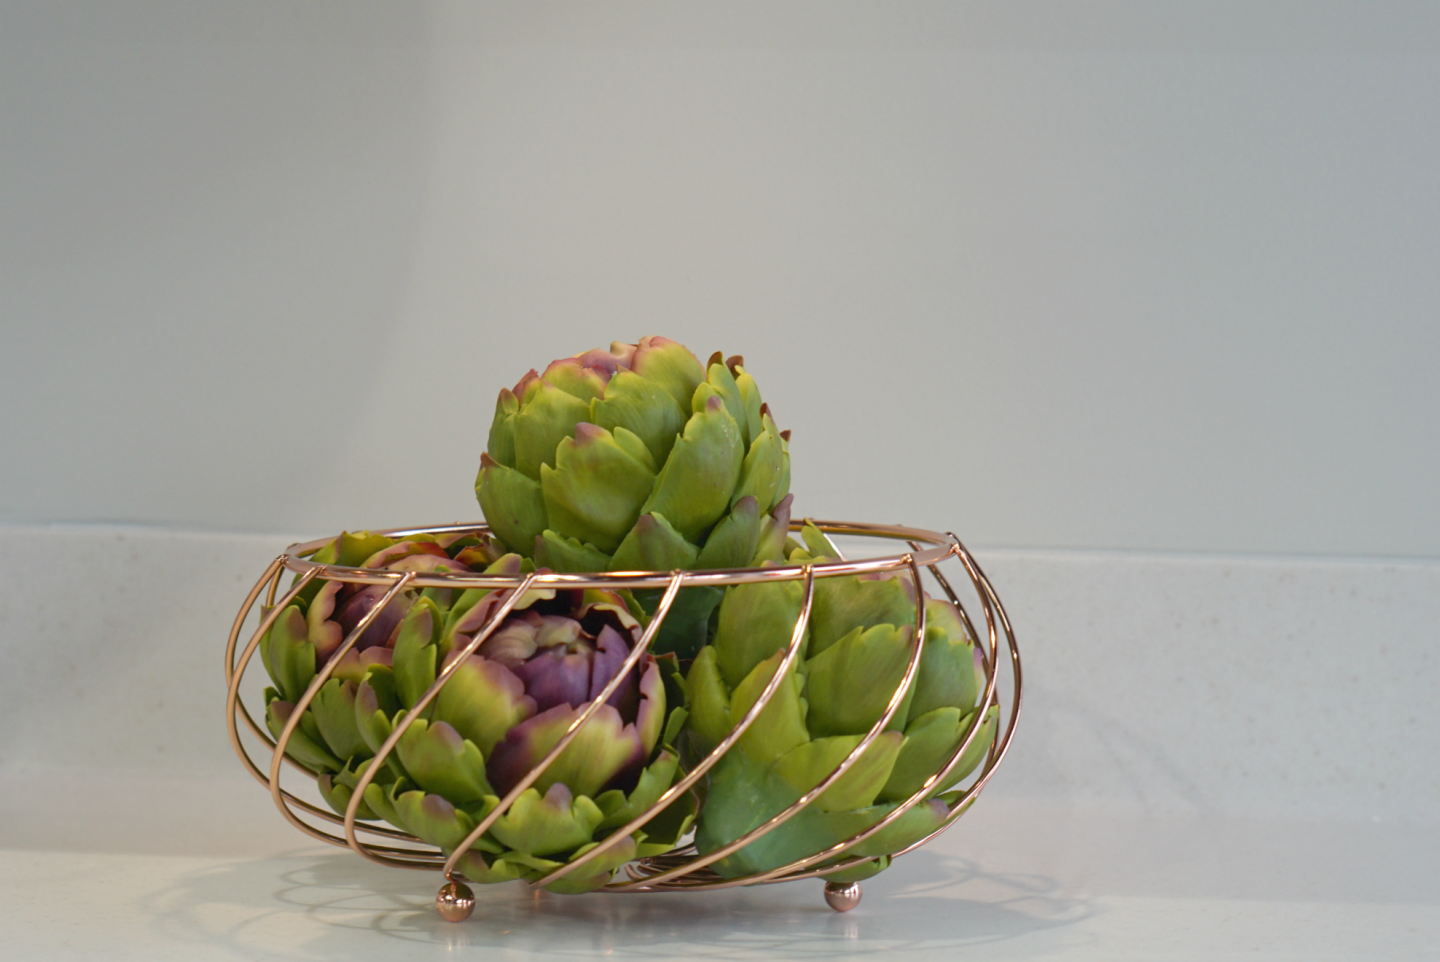 Rose Gold wire fruit basket in a Magnet Kitchen www.extraordinarychaos.com